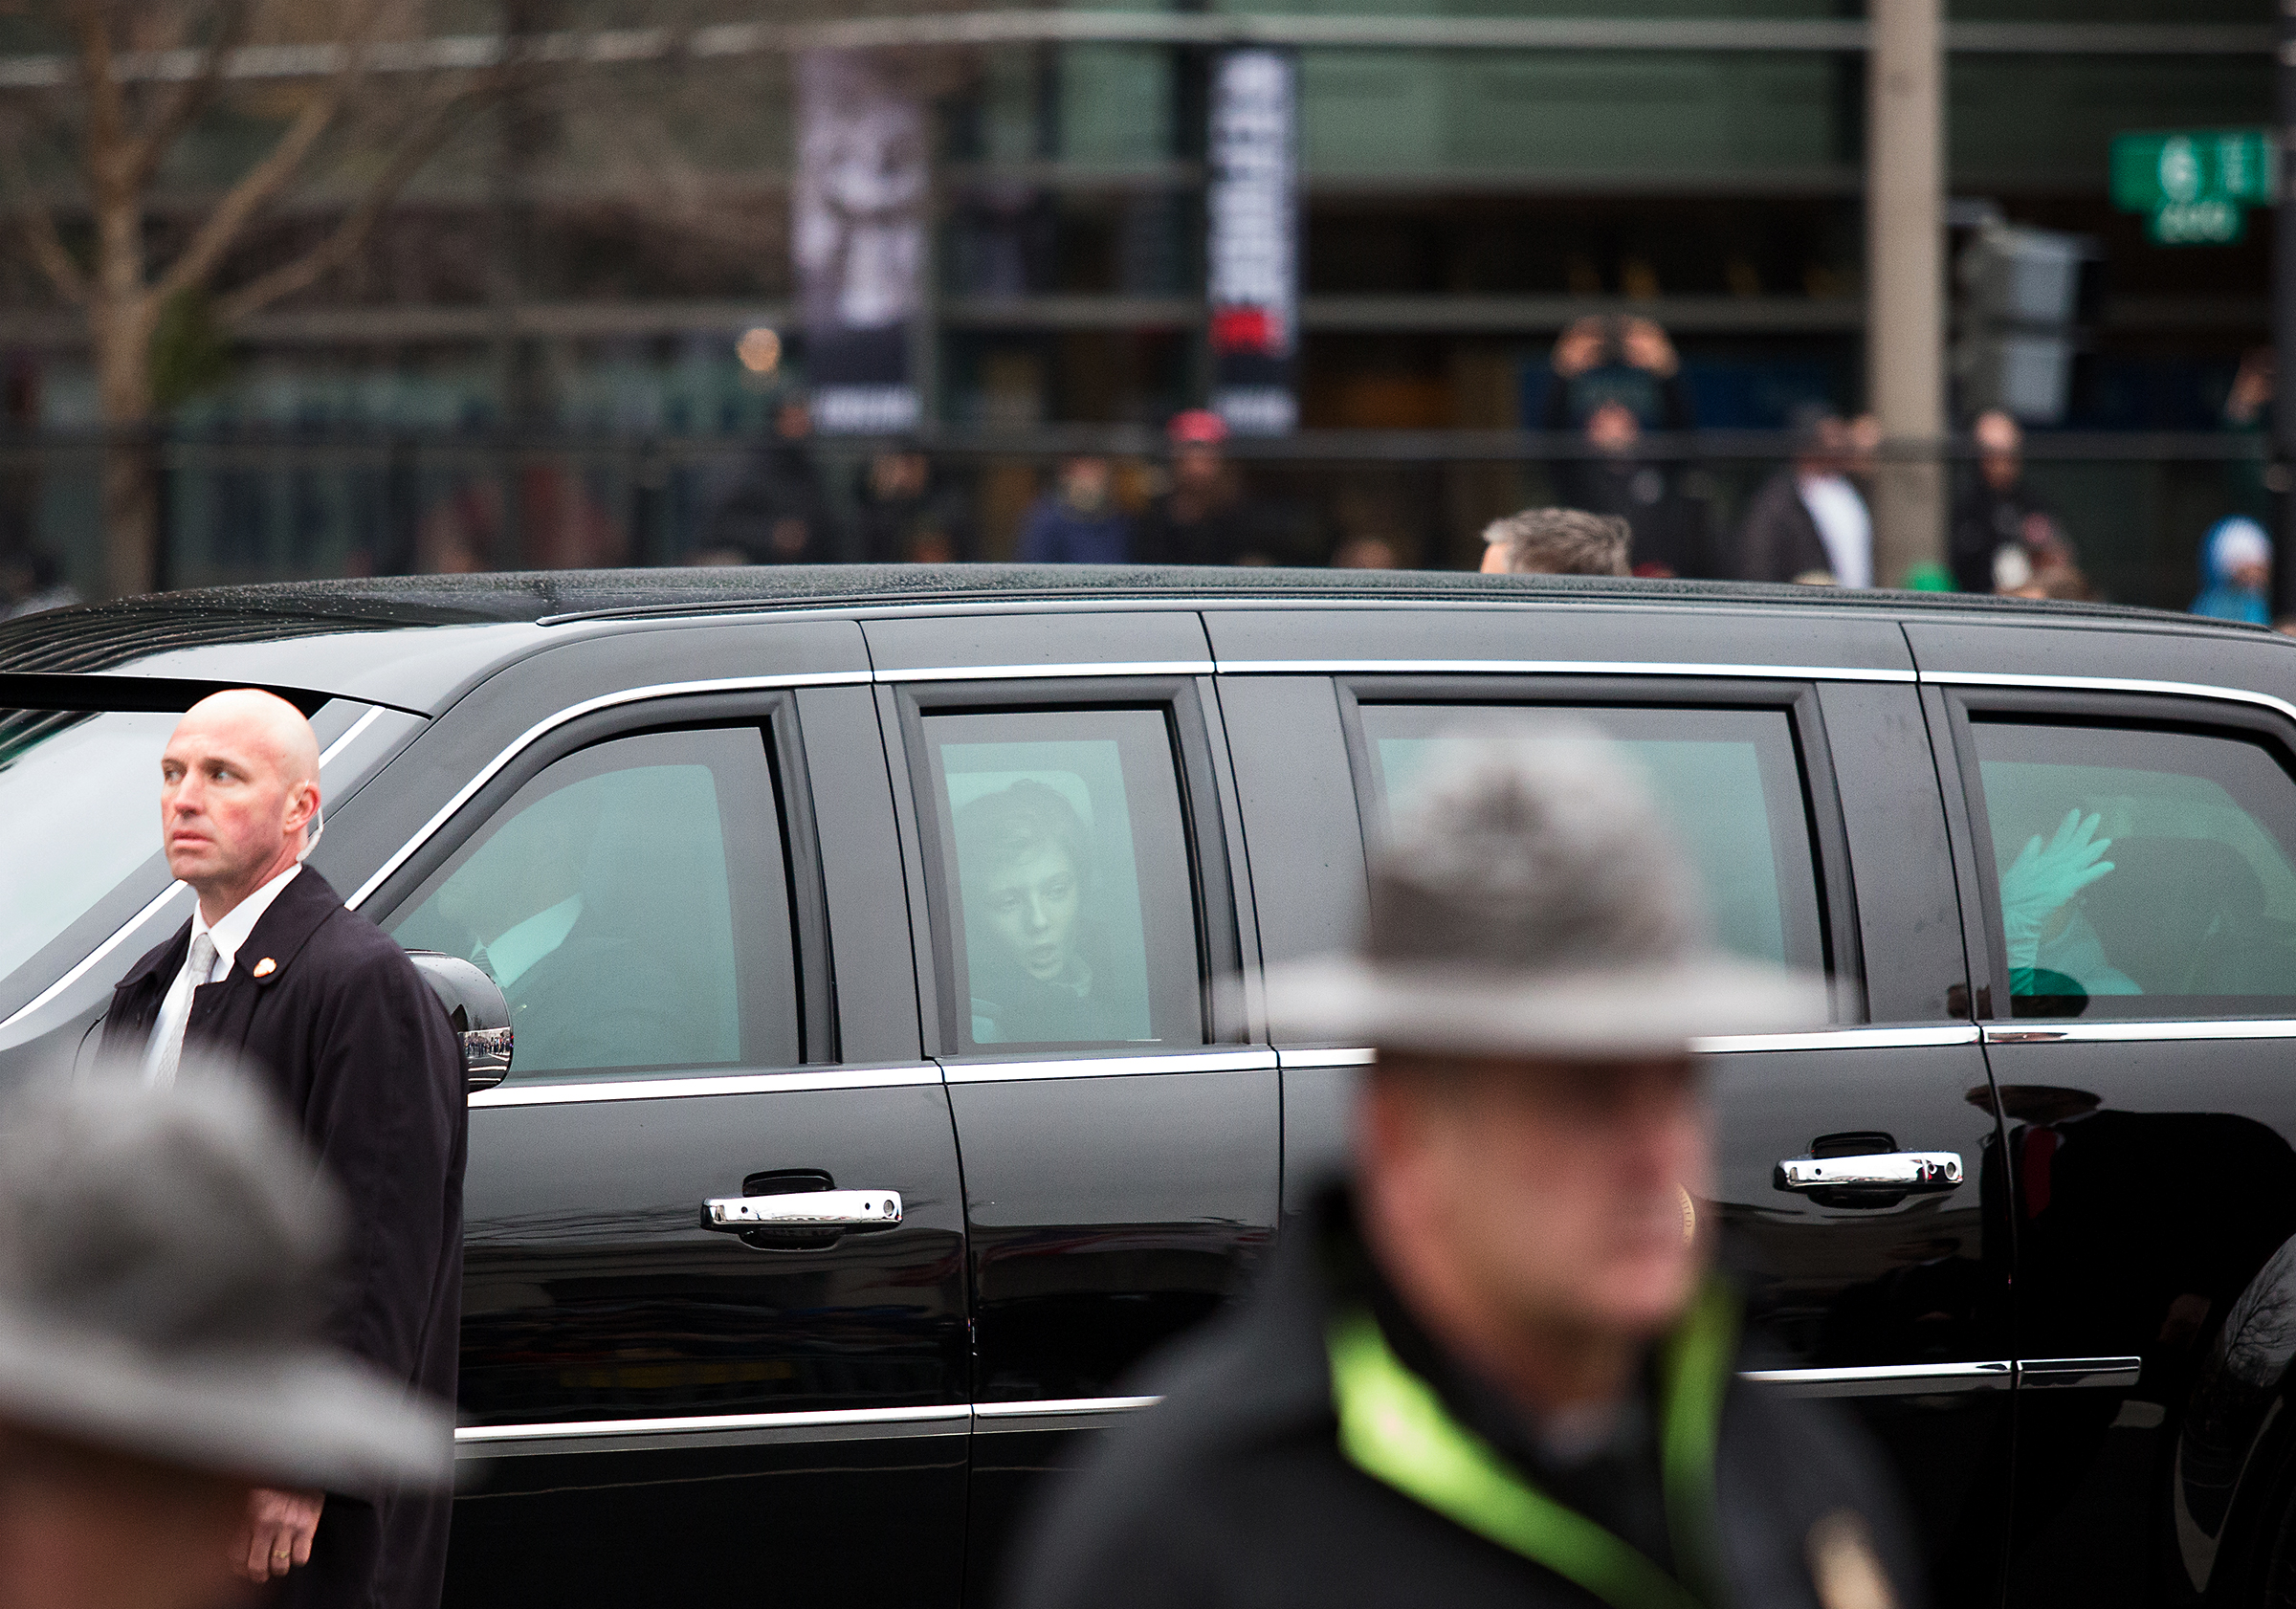 Barron Trump peeks out at the crowd watching the President Donald Trump's Inaugural Parade on Jan. 20, 2017.